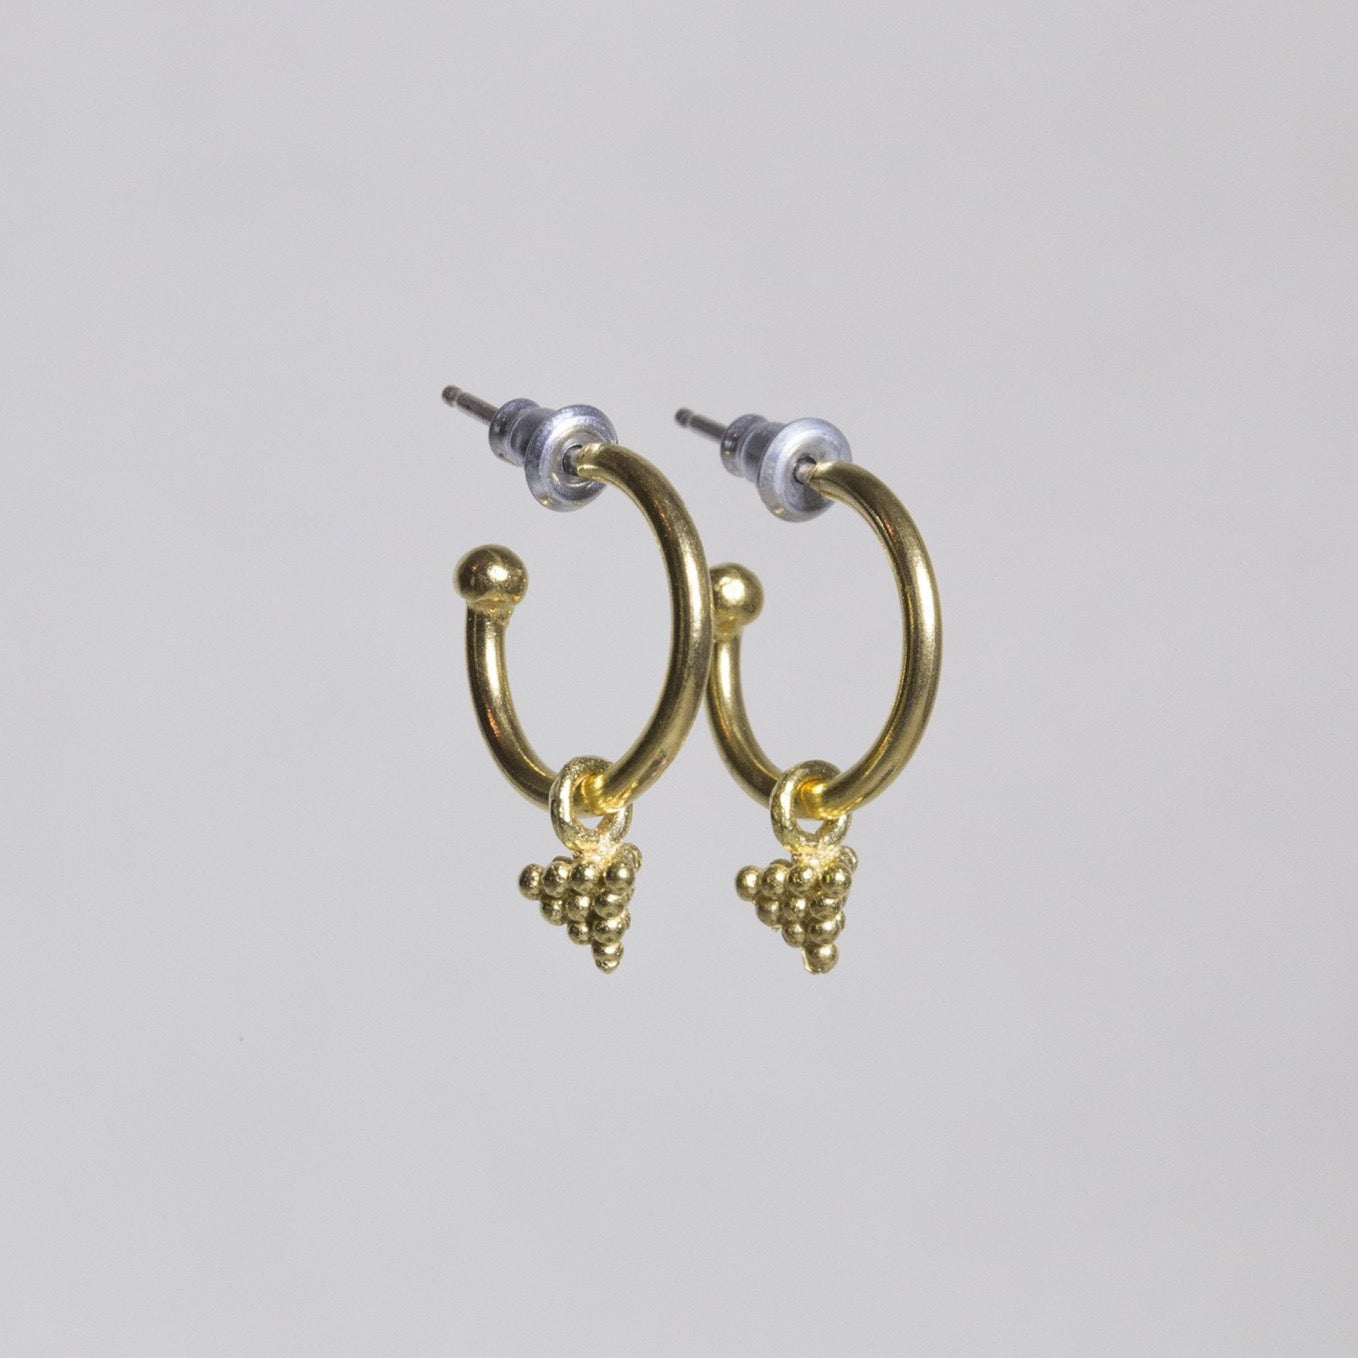 fantastically antique(ish) dotted pyramids charms on hoops